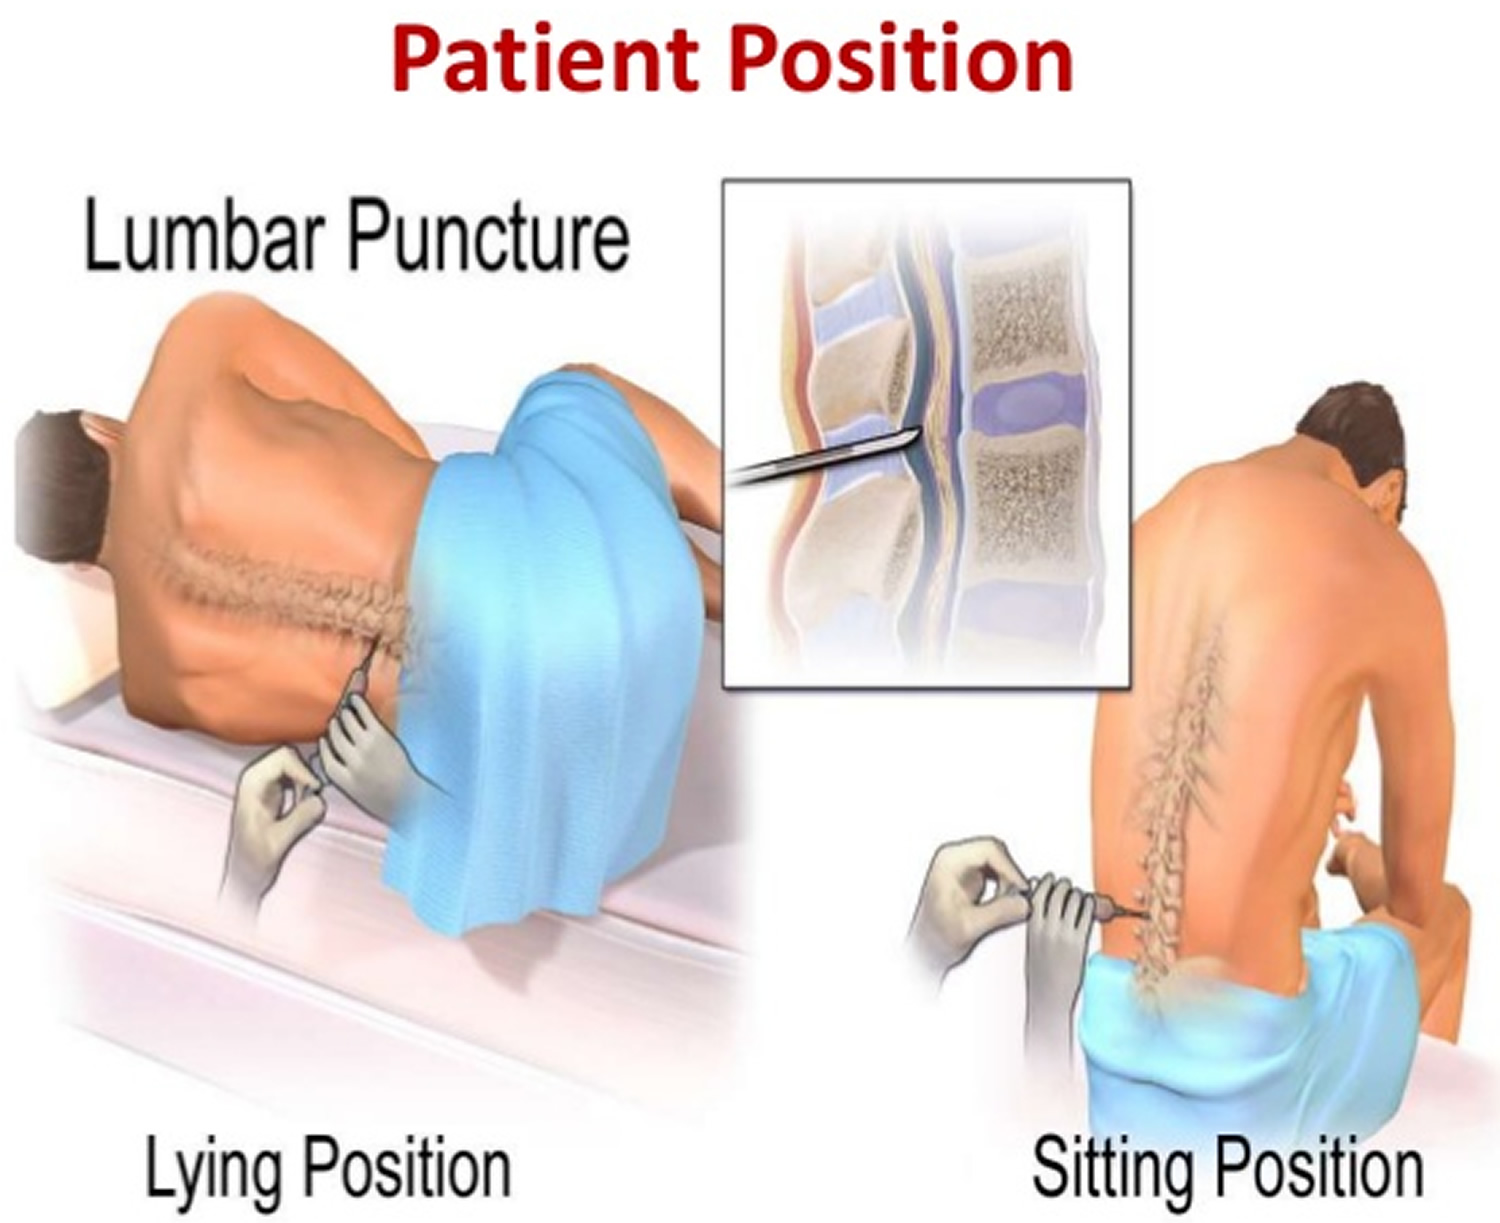 Lumbar Puncture Procedure Position Lumbar Puncture Side Effects